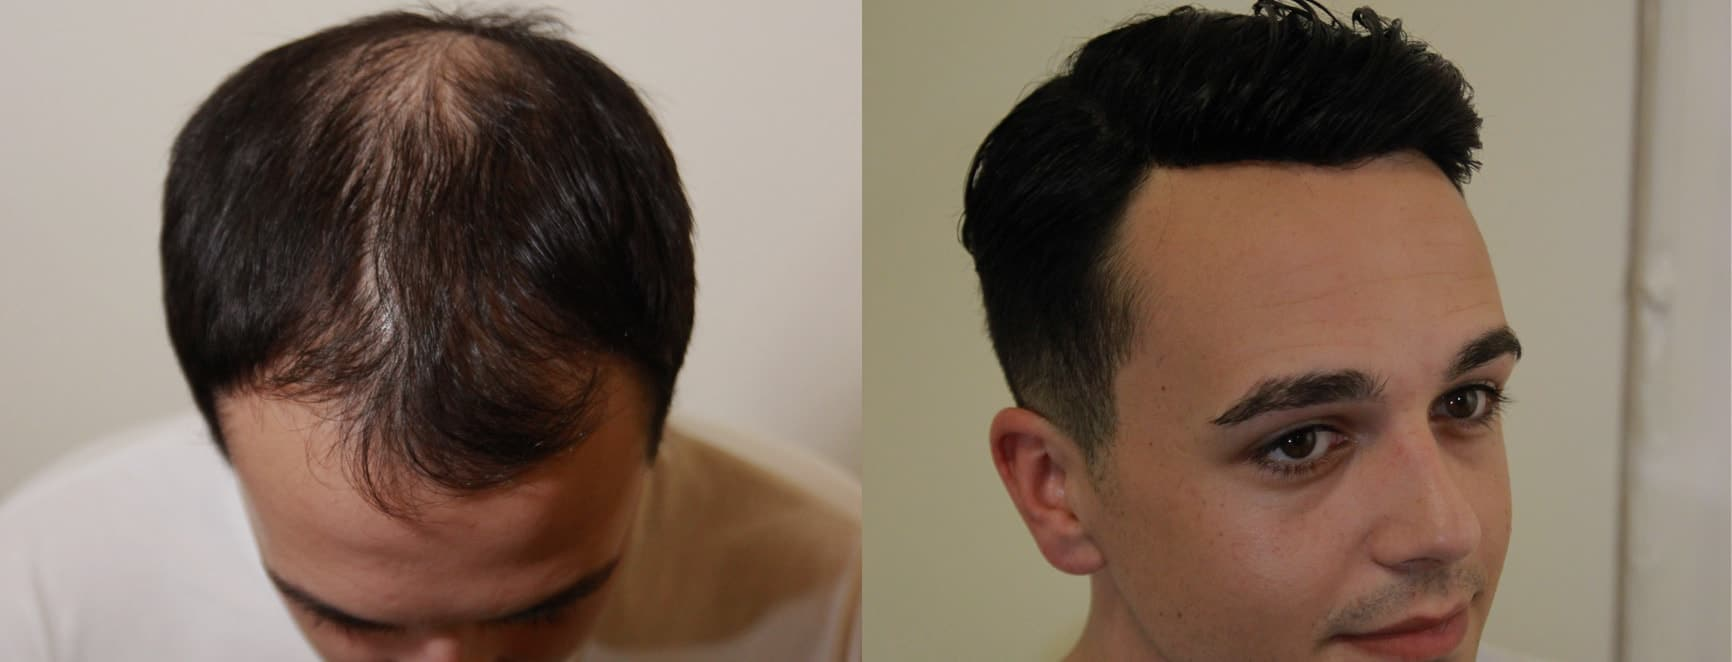 Hair replacement systems for male balding